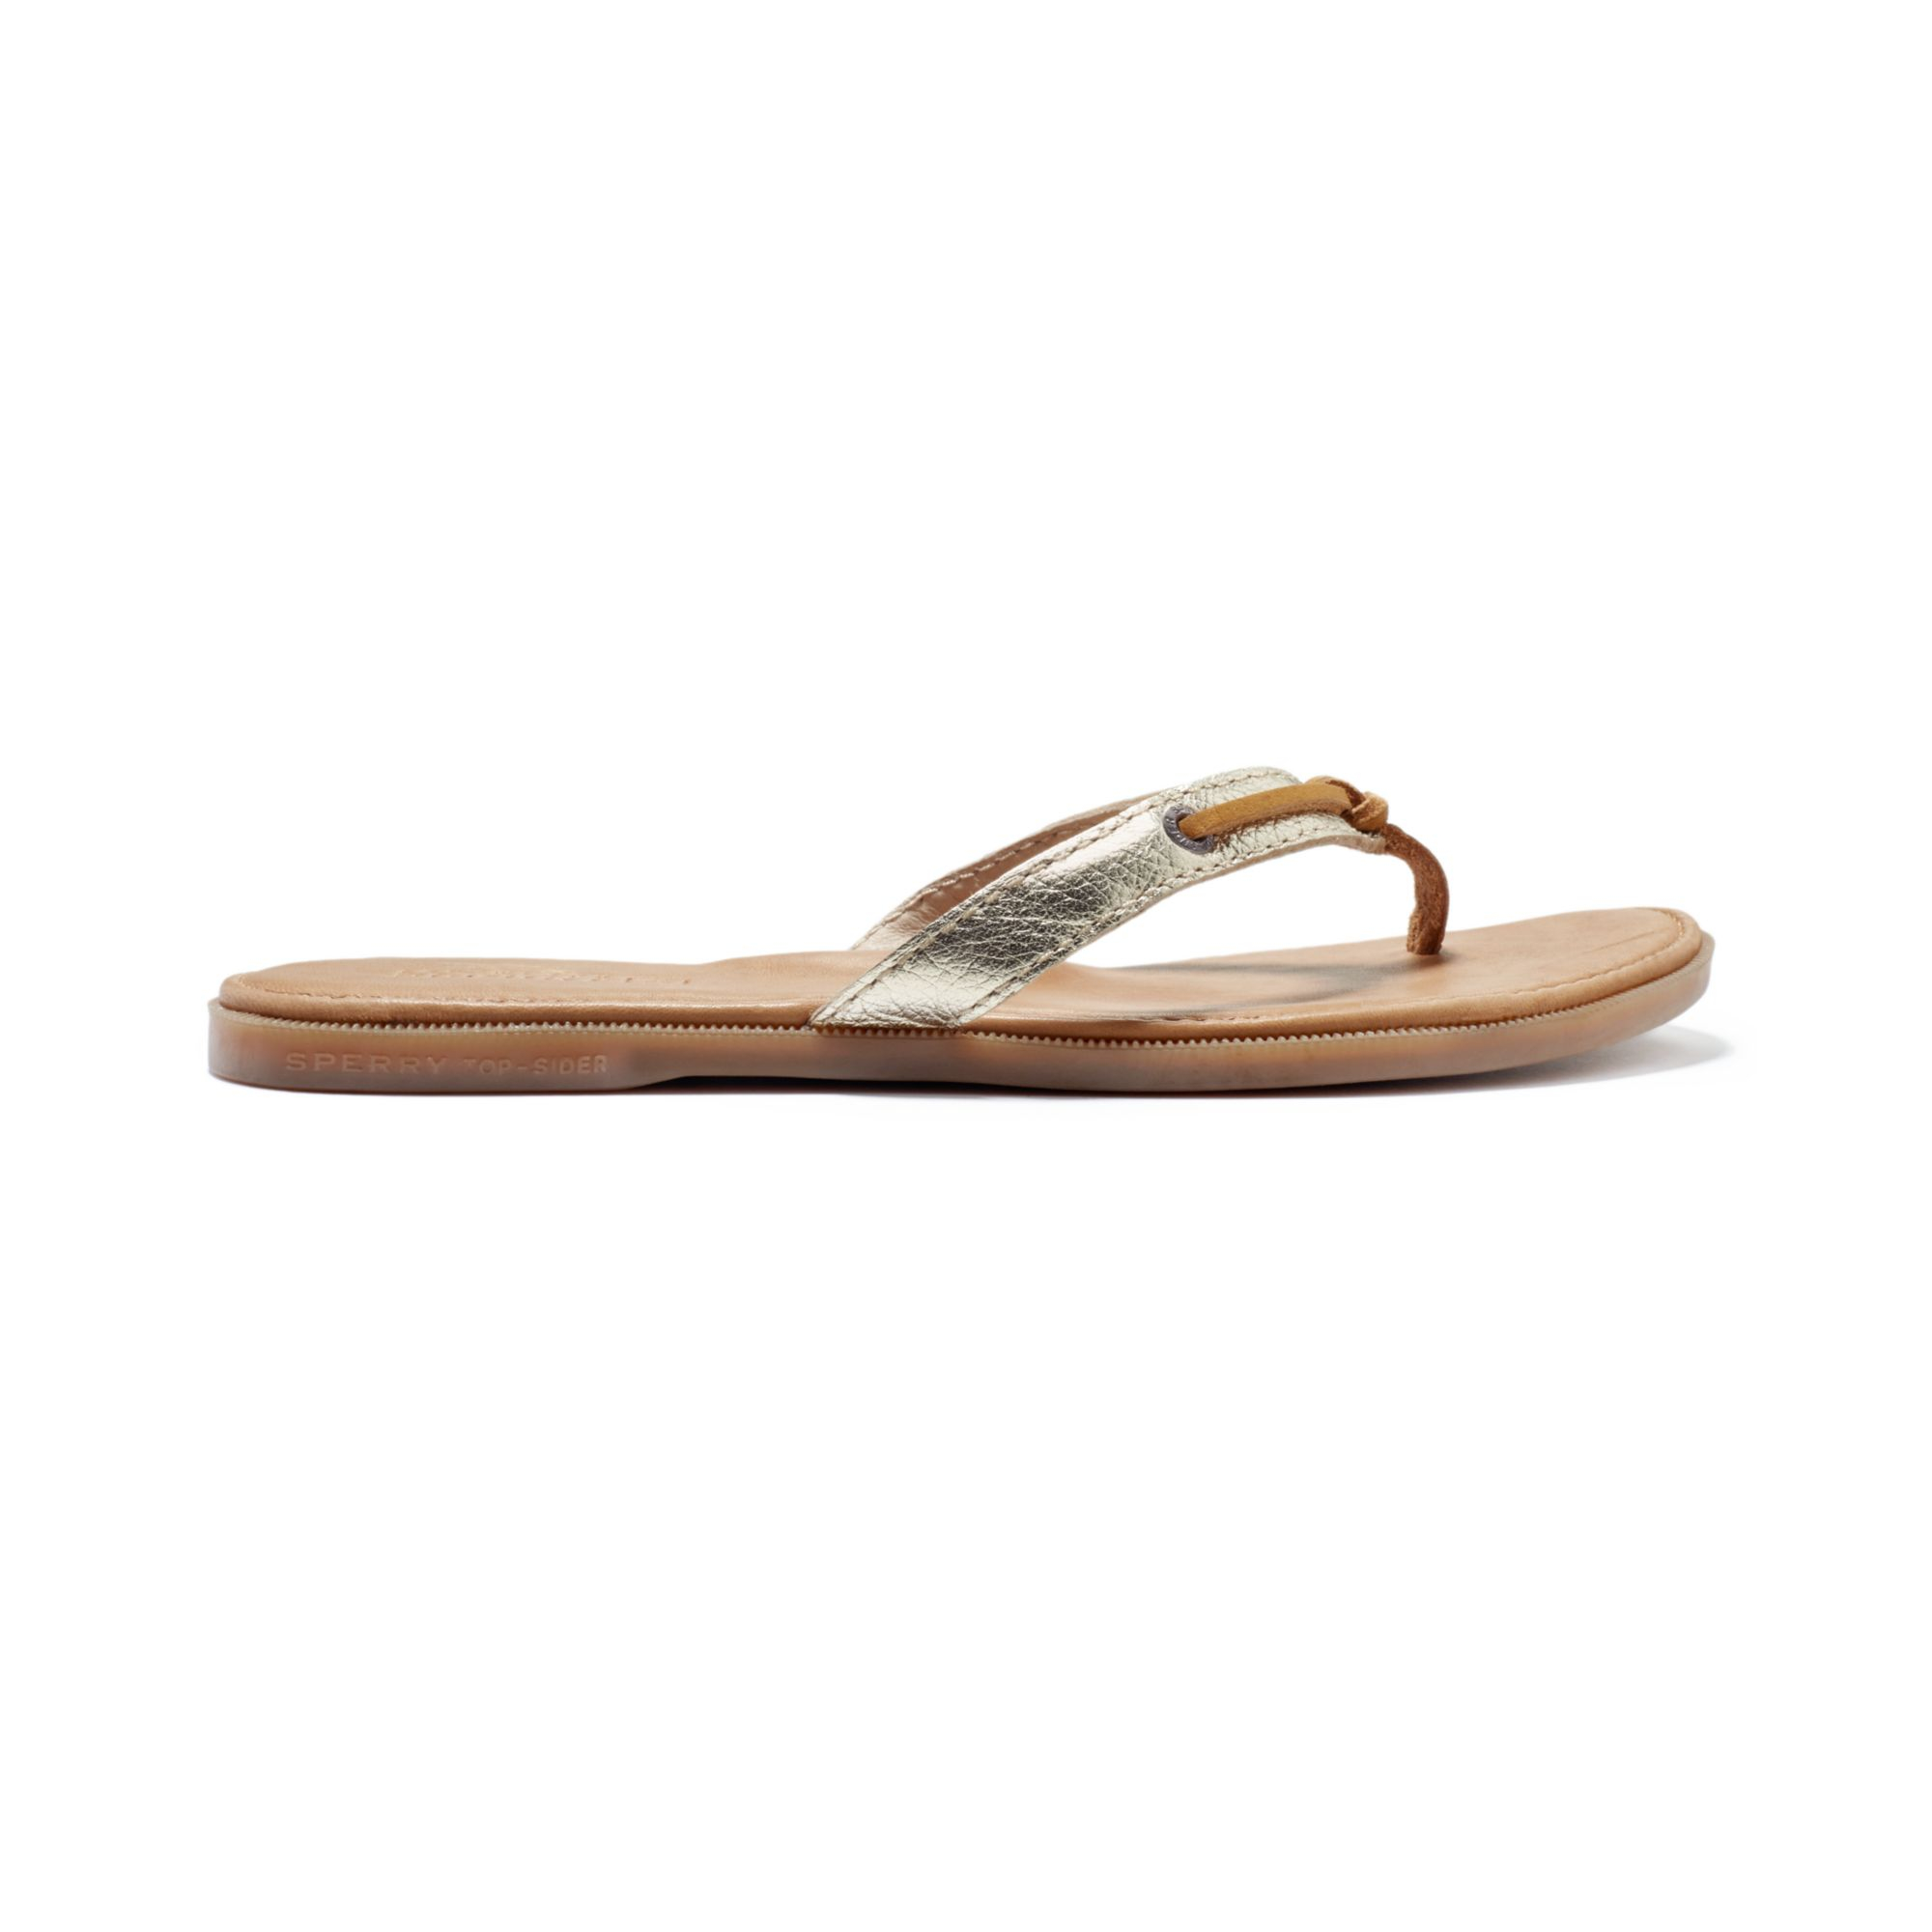 Sperry Top-Sider Sperry Womens Calla Flip Flops In Gold -6984